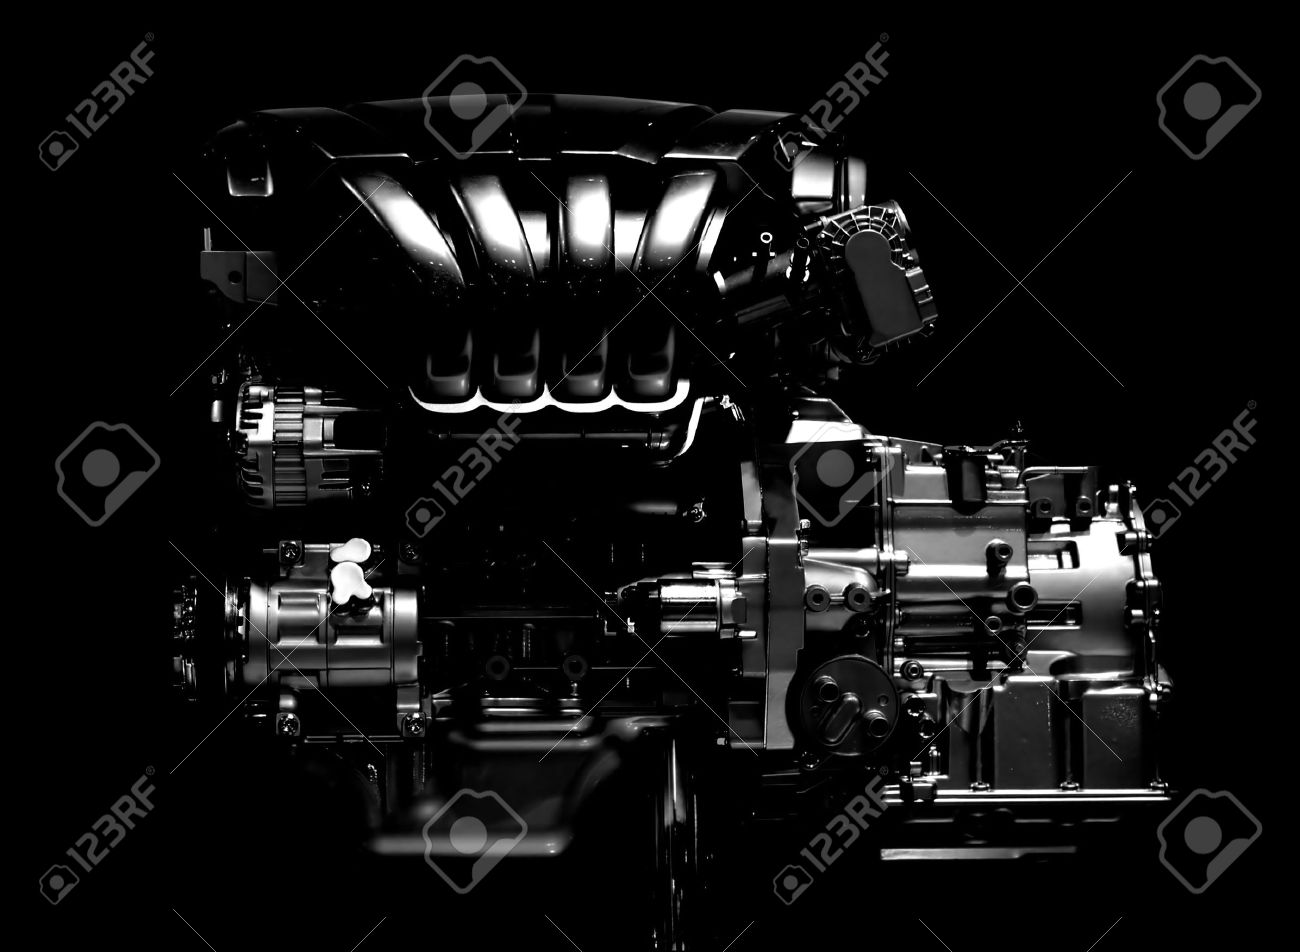 New Car Engine Isolated On Black Background Stock Photo Picture And Royalty Free Image Image 11321252